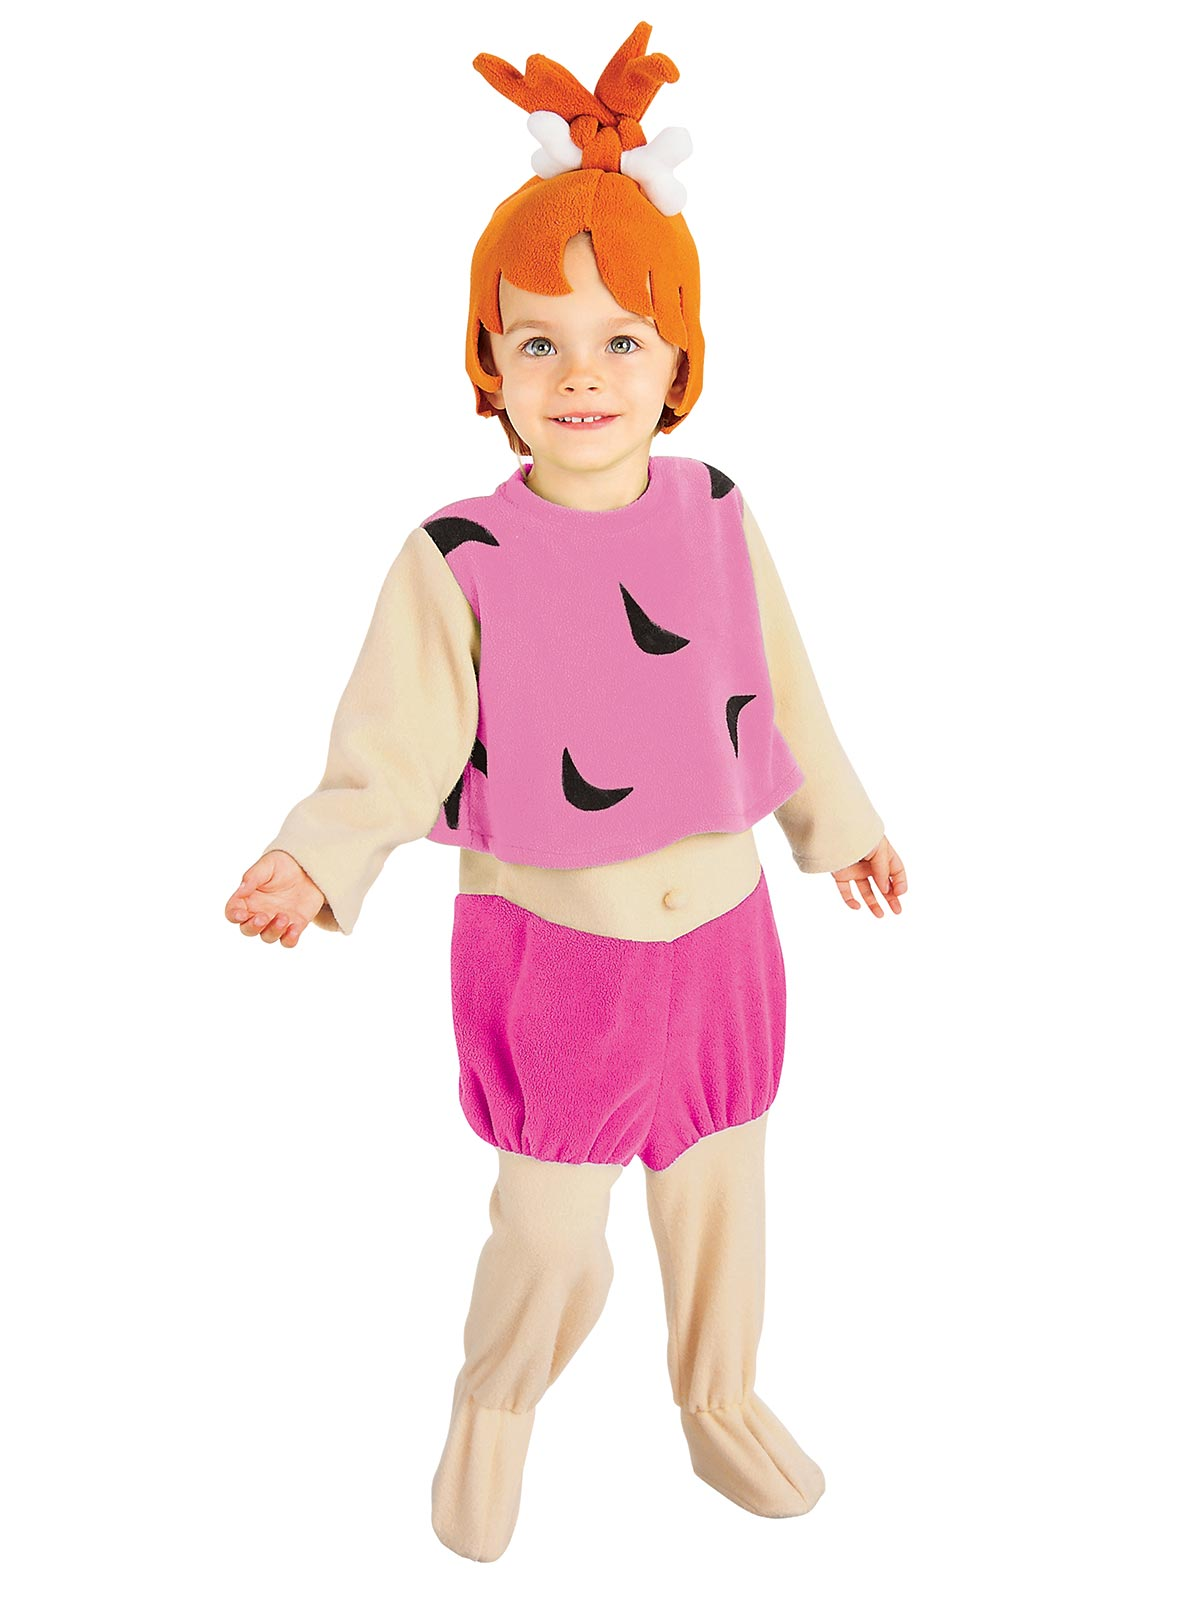 Pebbles The Flintstones Child and Toddler Costume - Buy Online Only